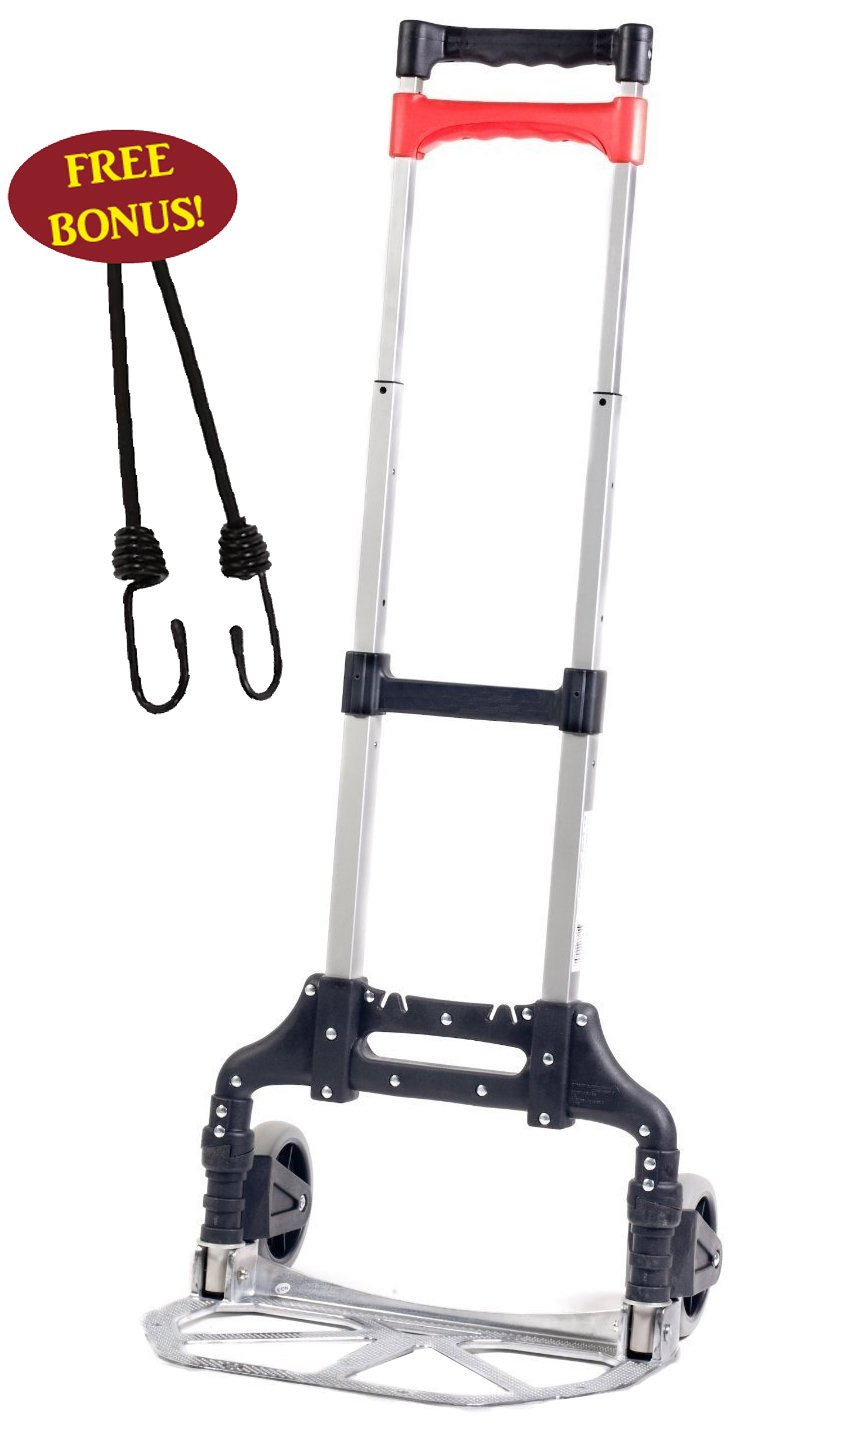 Bovado USA BOV-16636 Hand Truck, Folding Aluminum Cart, Movers Dolly for Moving Needs